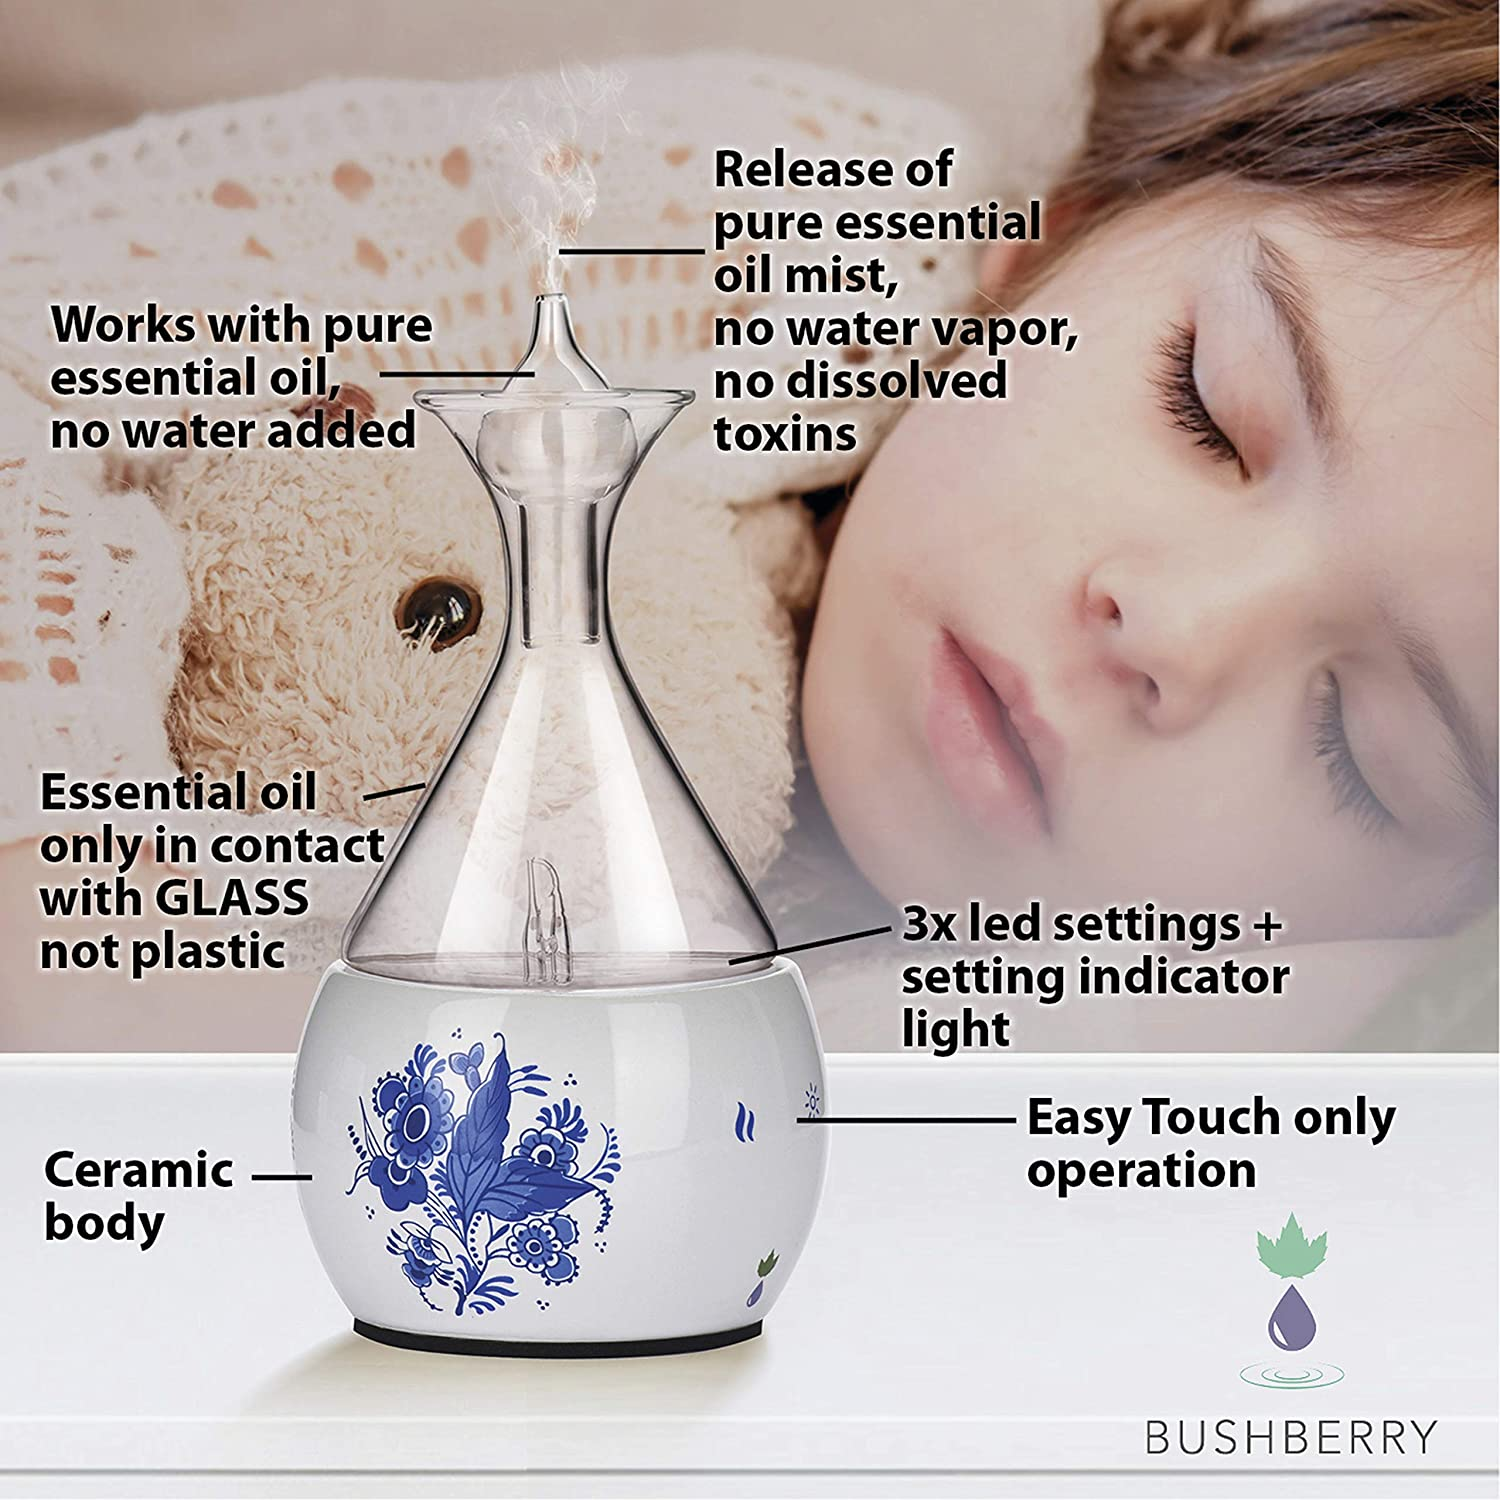 Bushberry-Mist Nebulizing Diffuser ratings